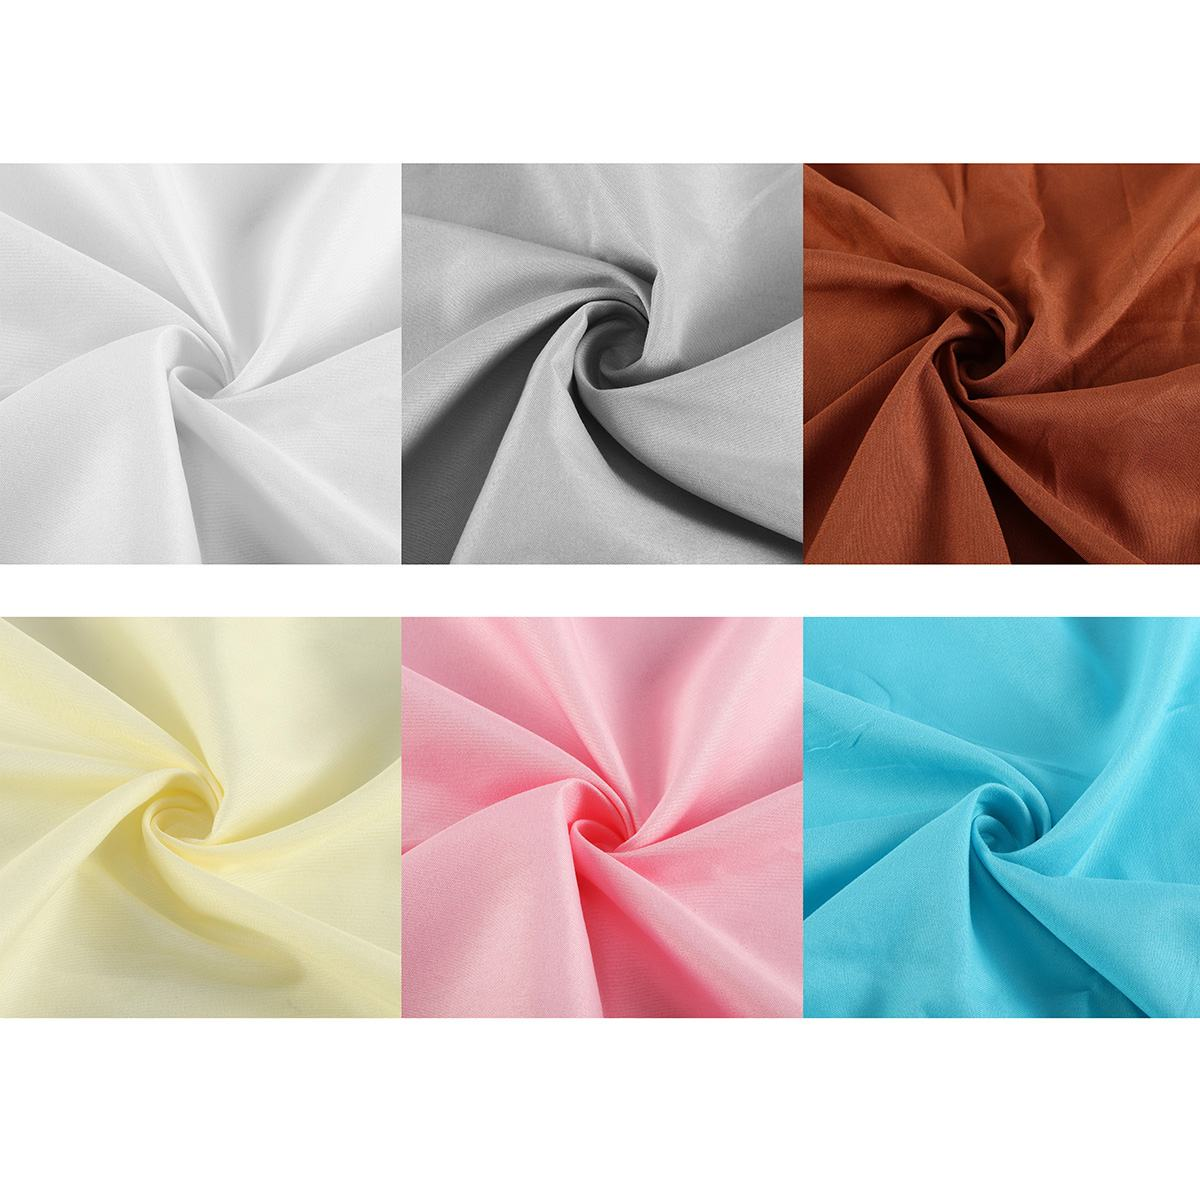 Soft Polyester Massage Bed Cover Beauty Salon Massage Sheet Body SPA Treatment Relaxation Bedsheet With Face Breath Hole